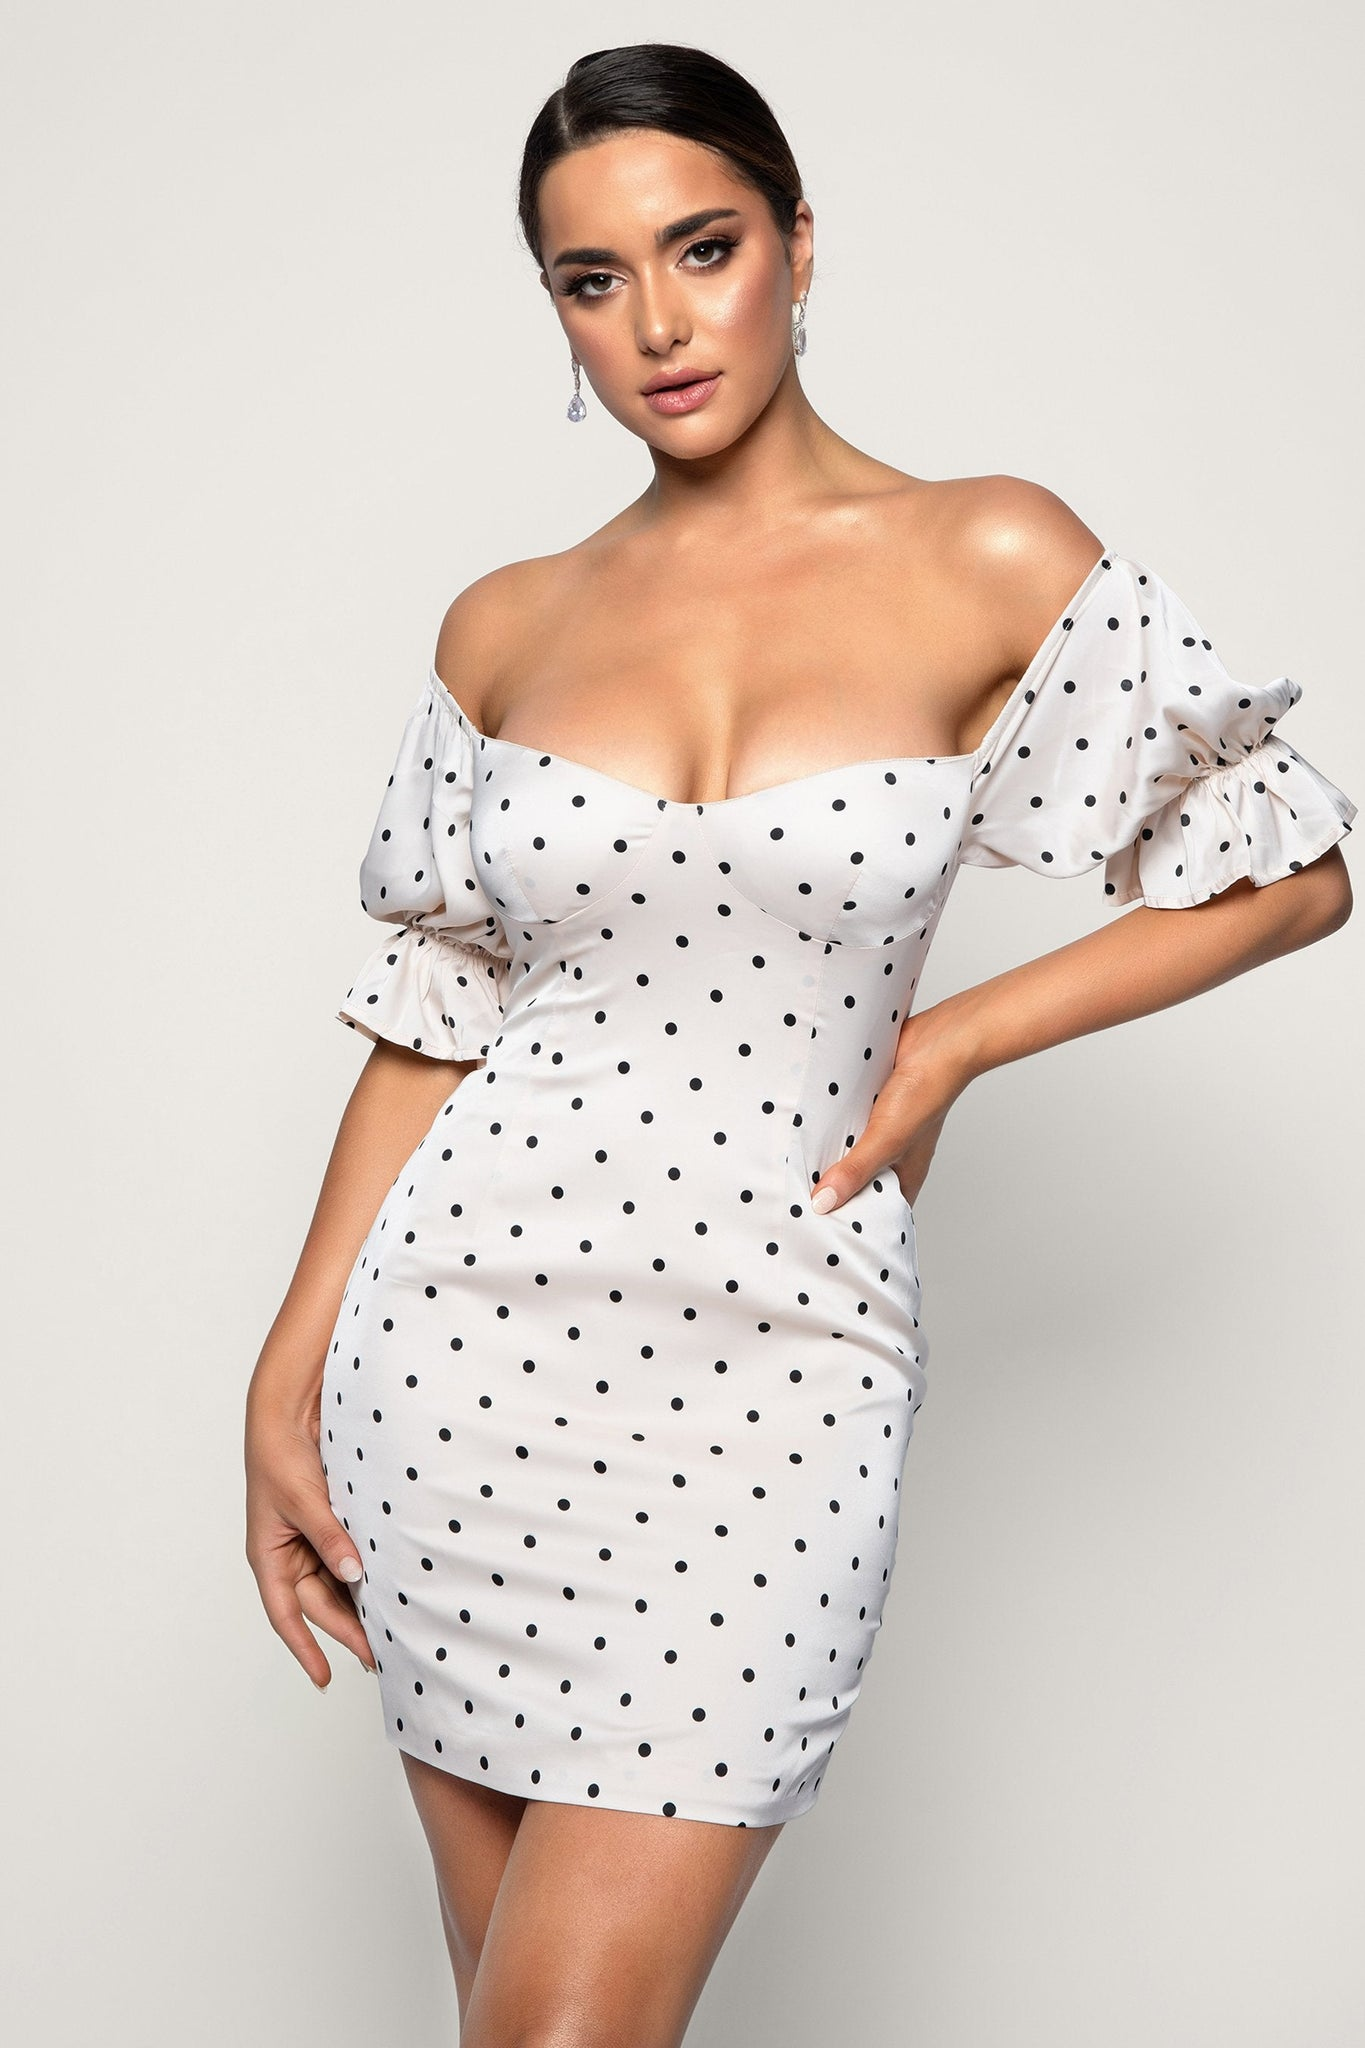 Jemima Polkadot Off Shoulder Mini Dress - Polkadot - MESHKI